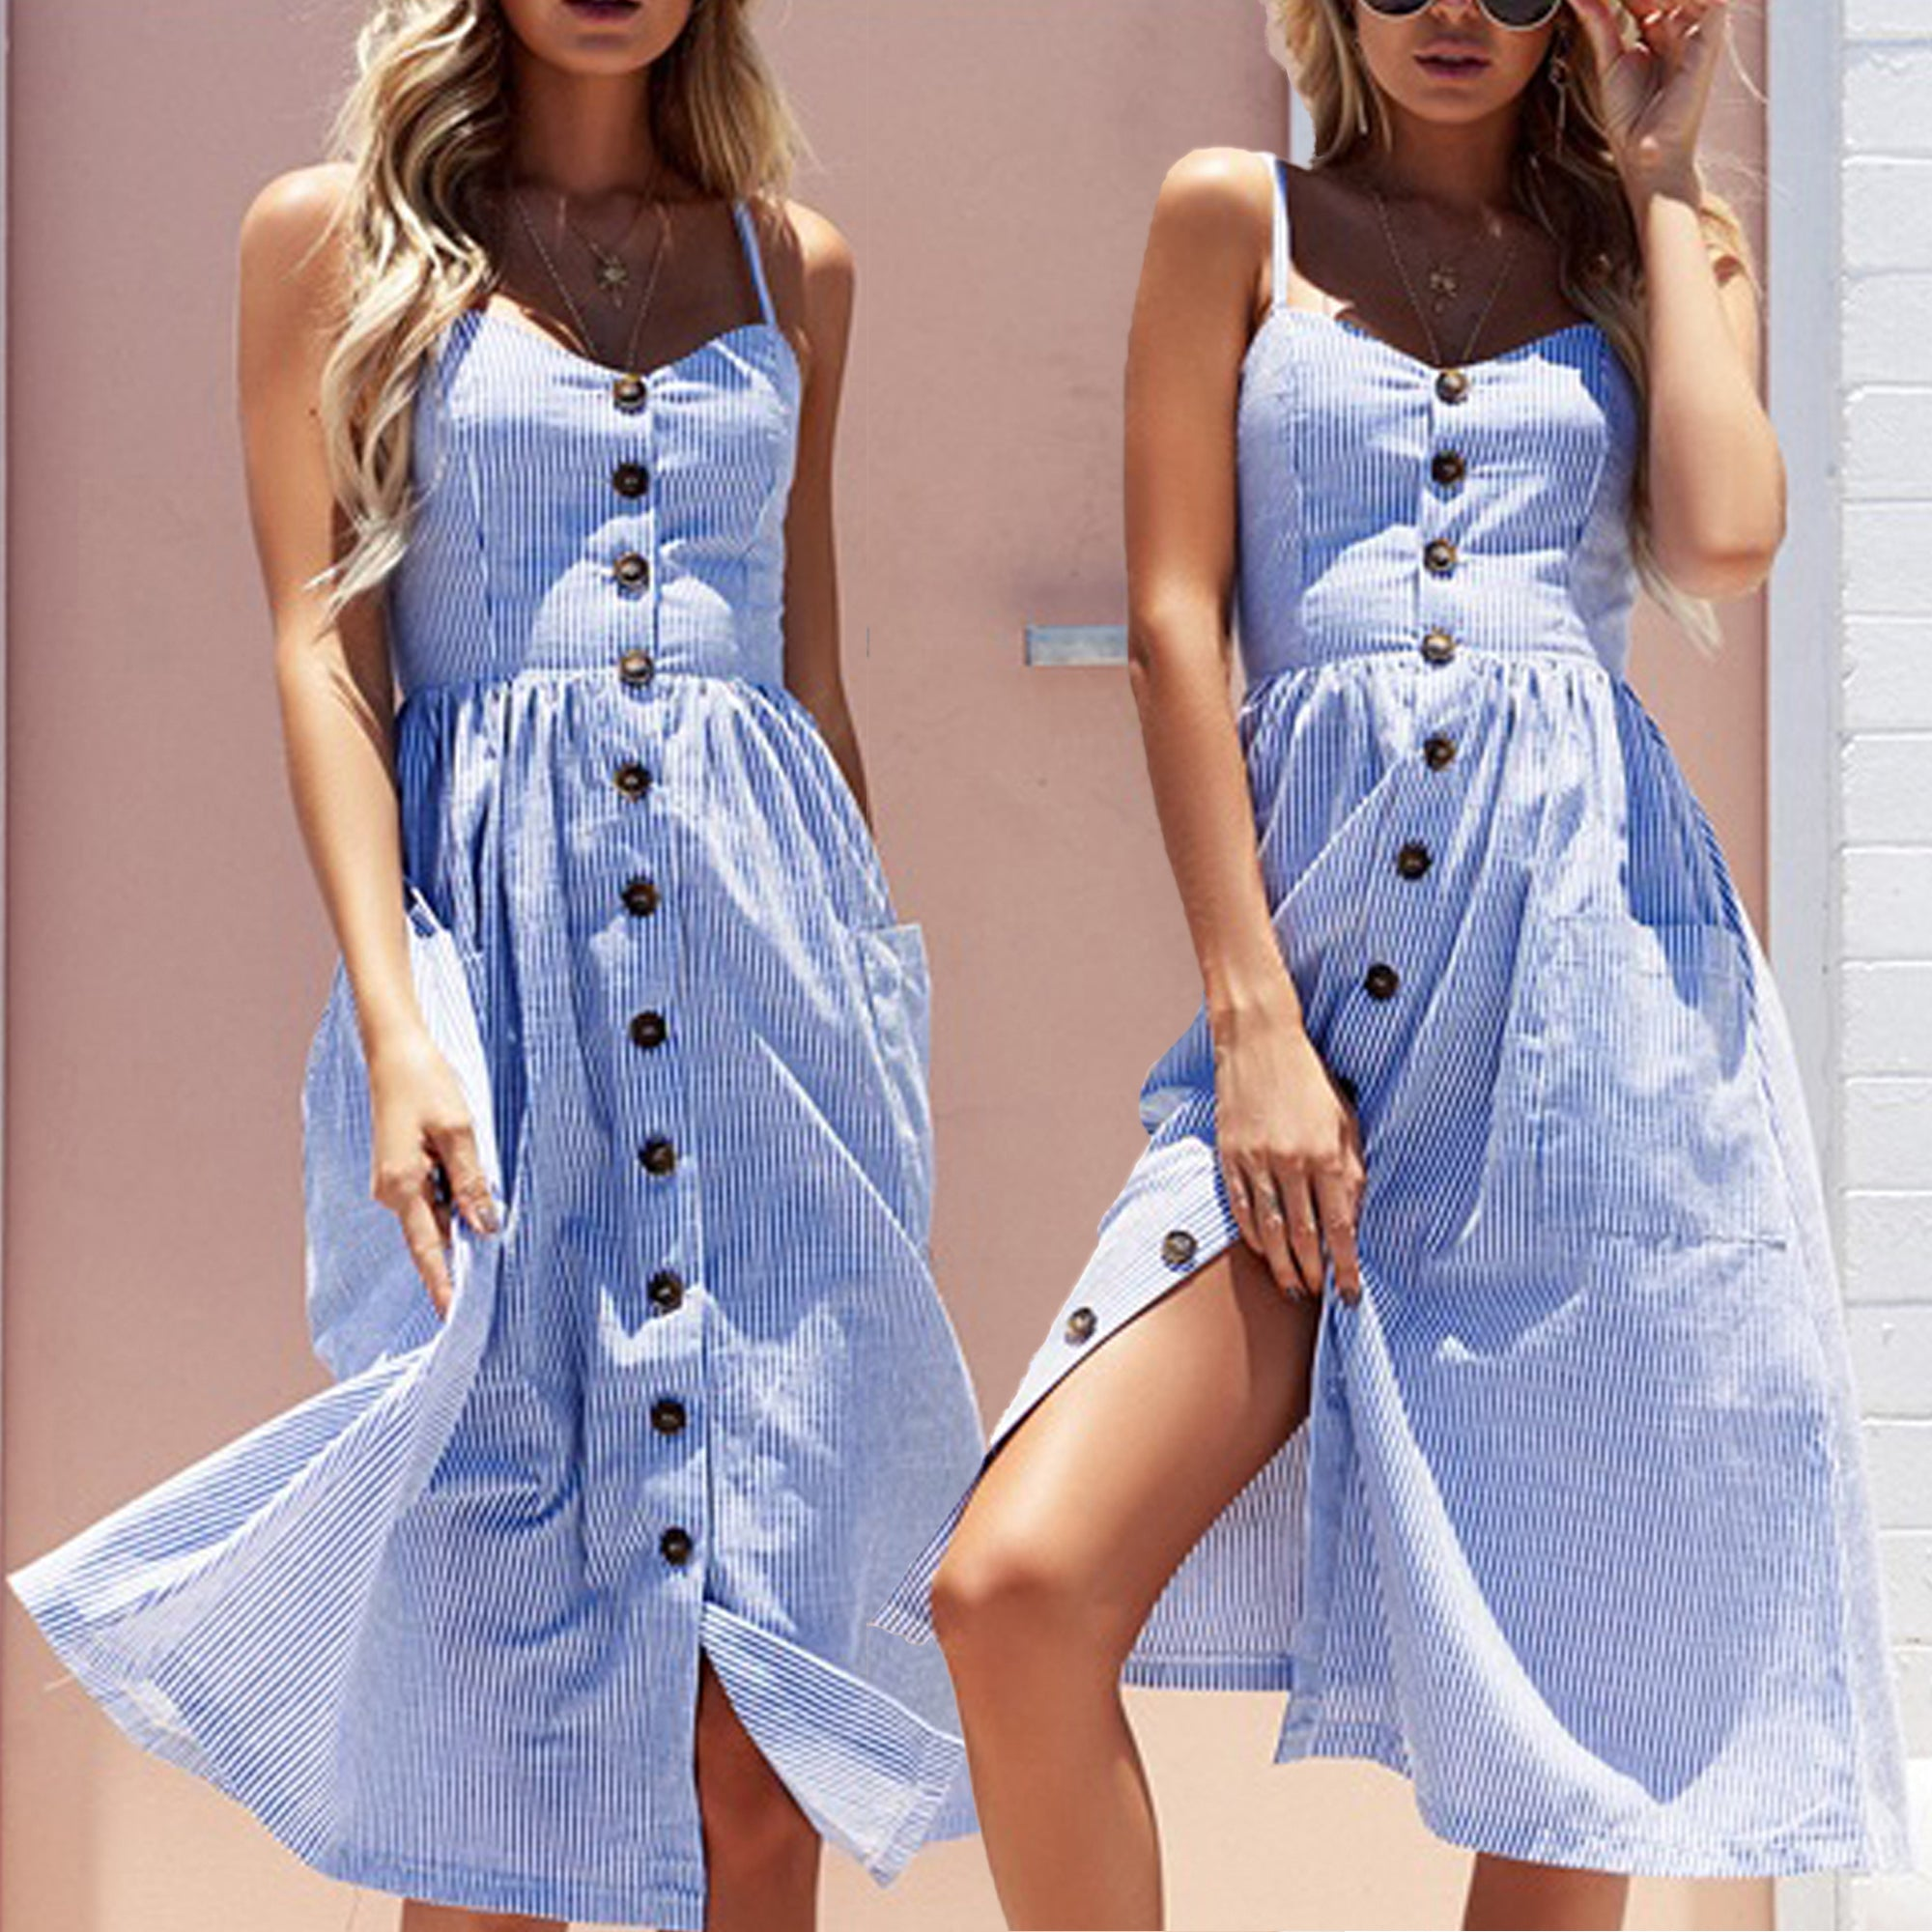 Summer Wedding Outfit Ideas: Vanessa Button Up Spaghetti Strap Blue & White Striped